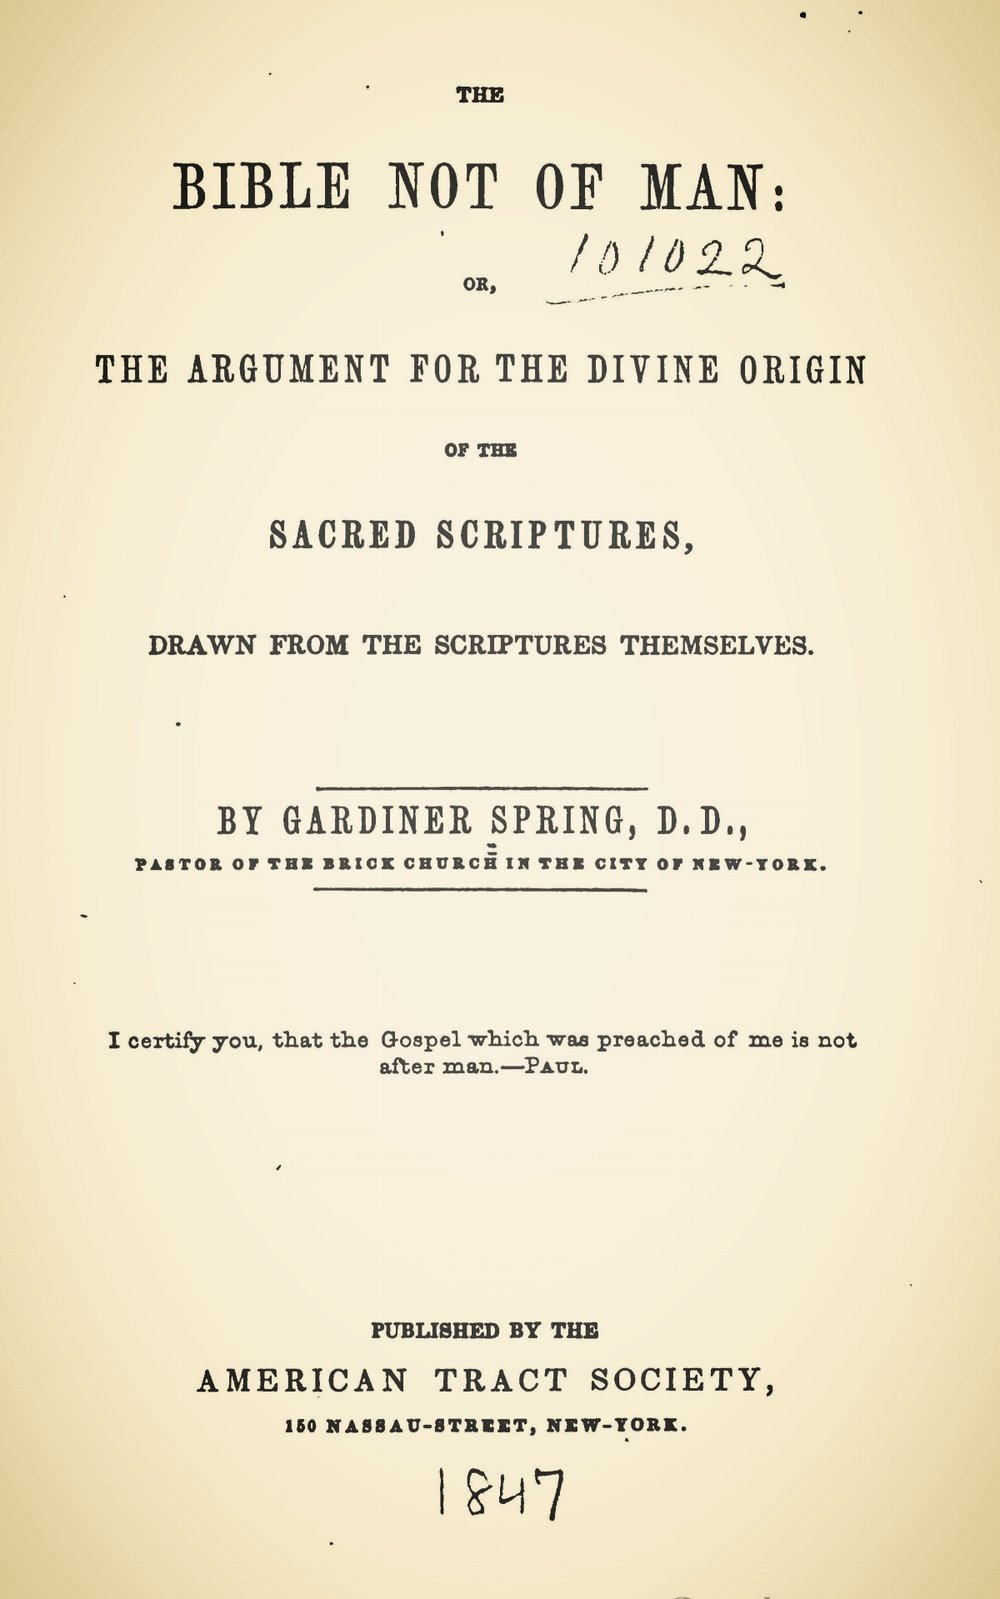 Spring, Gardiner, The Bible Not of Man Title Page.jpg